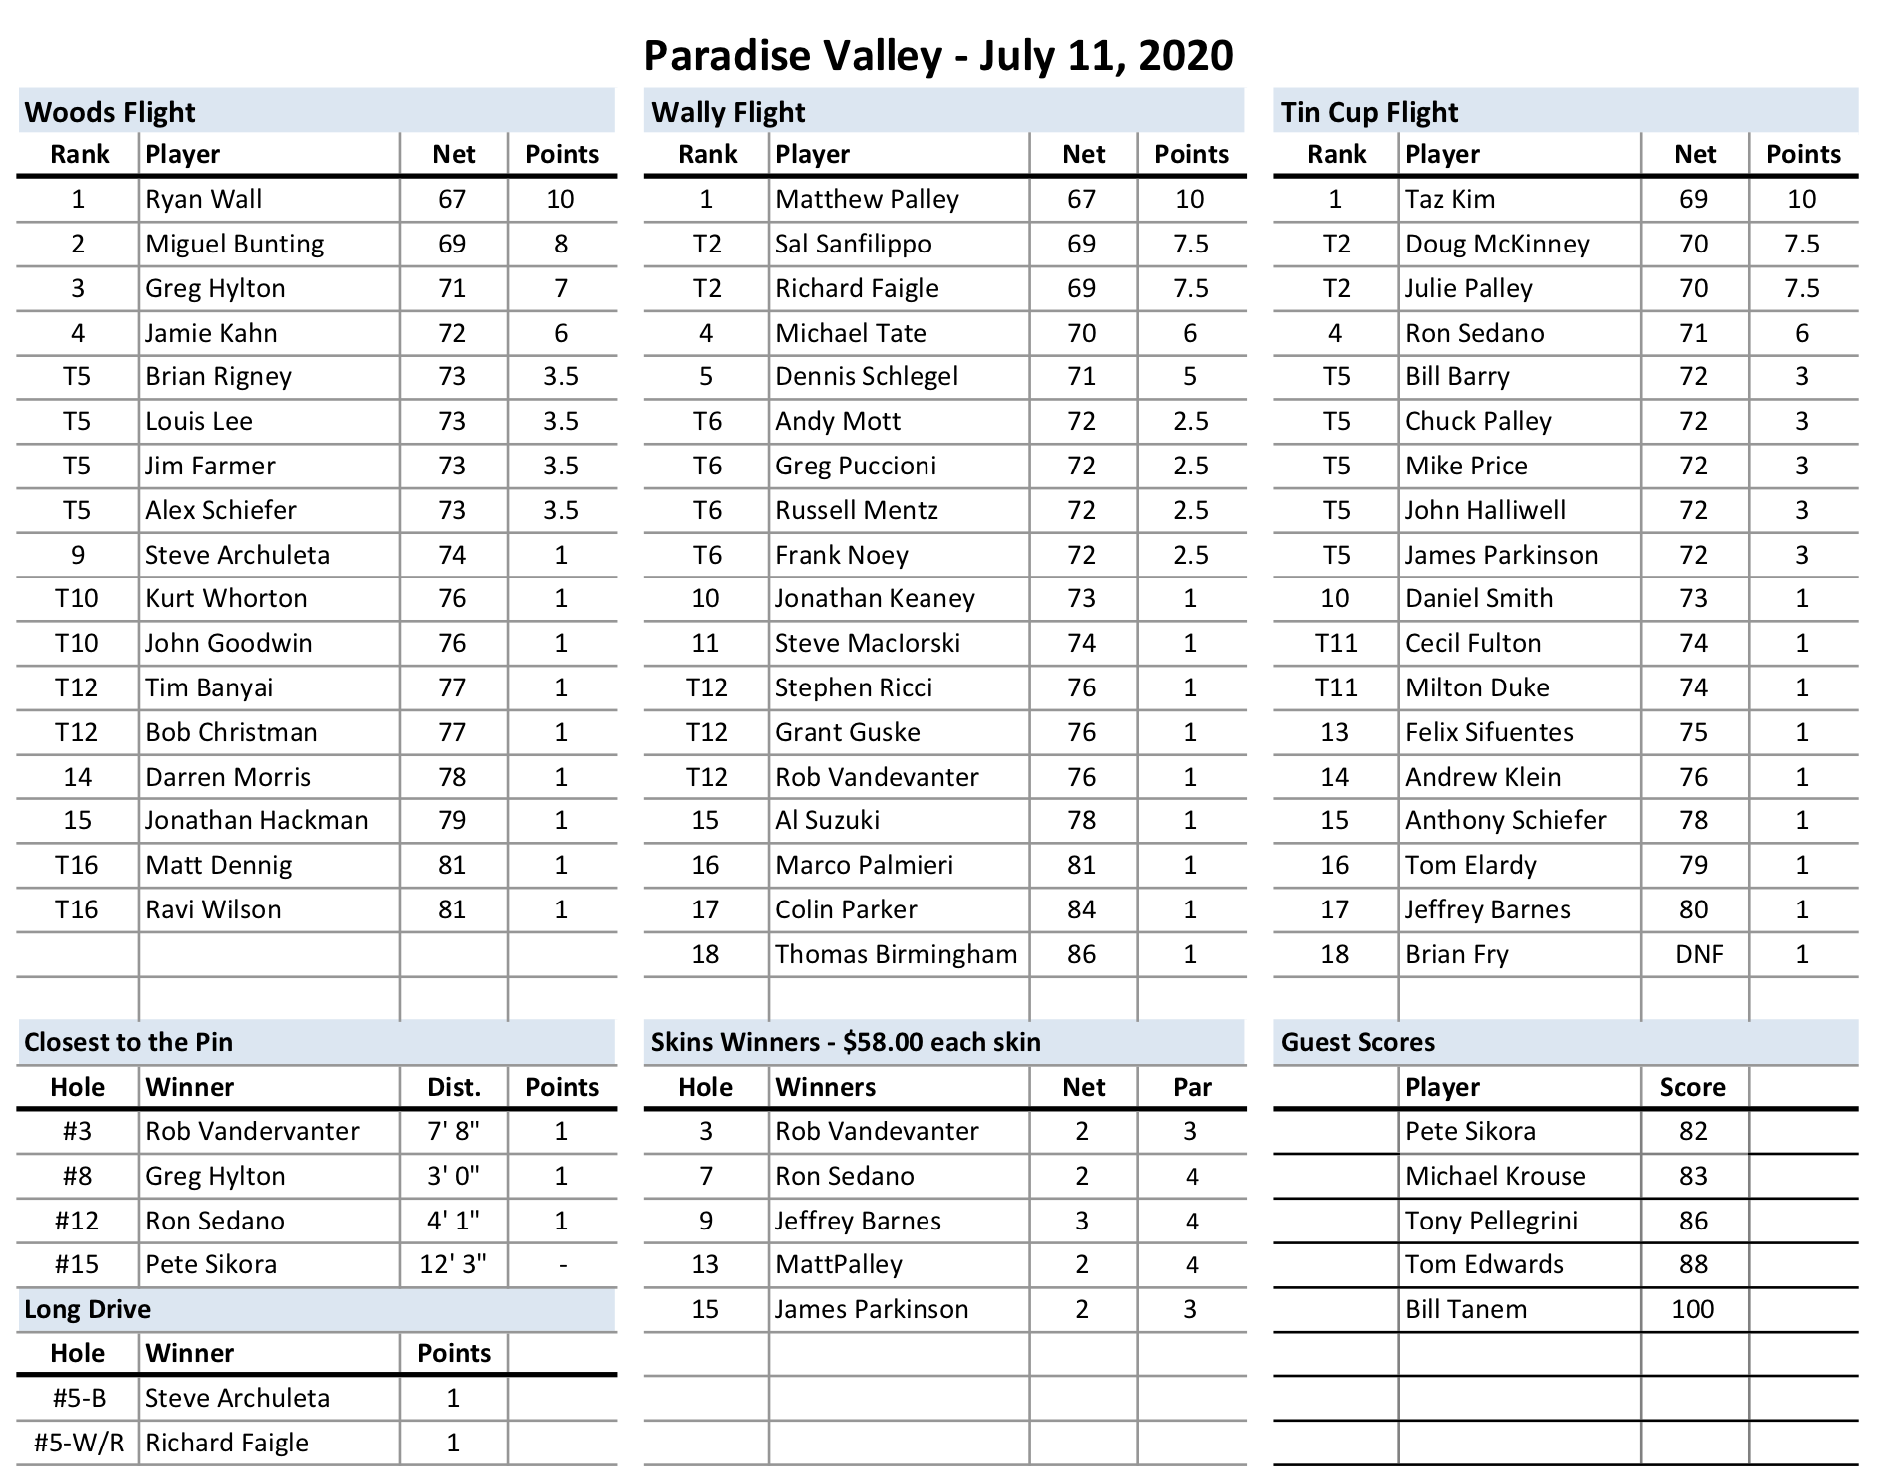 Paradise Valley Results